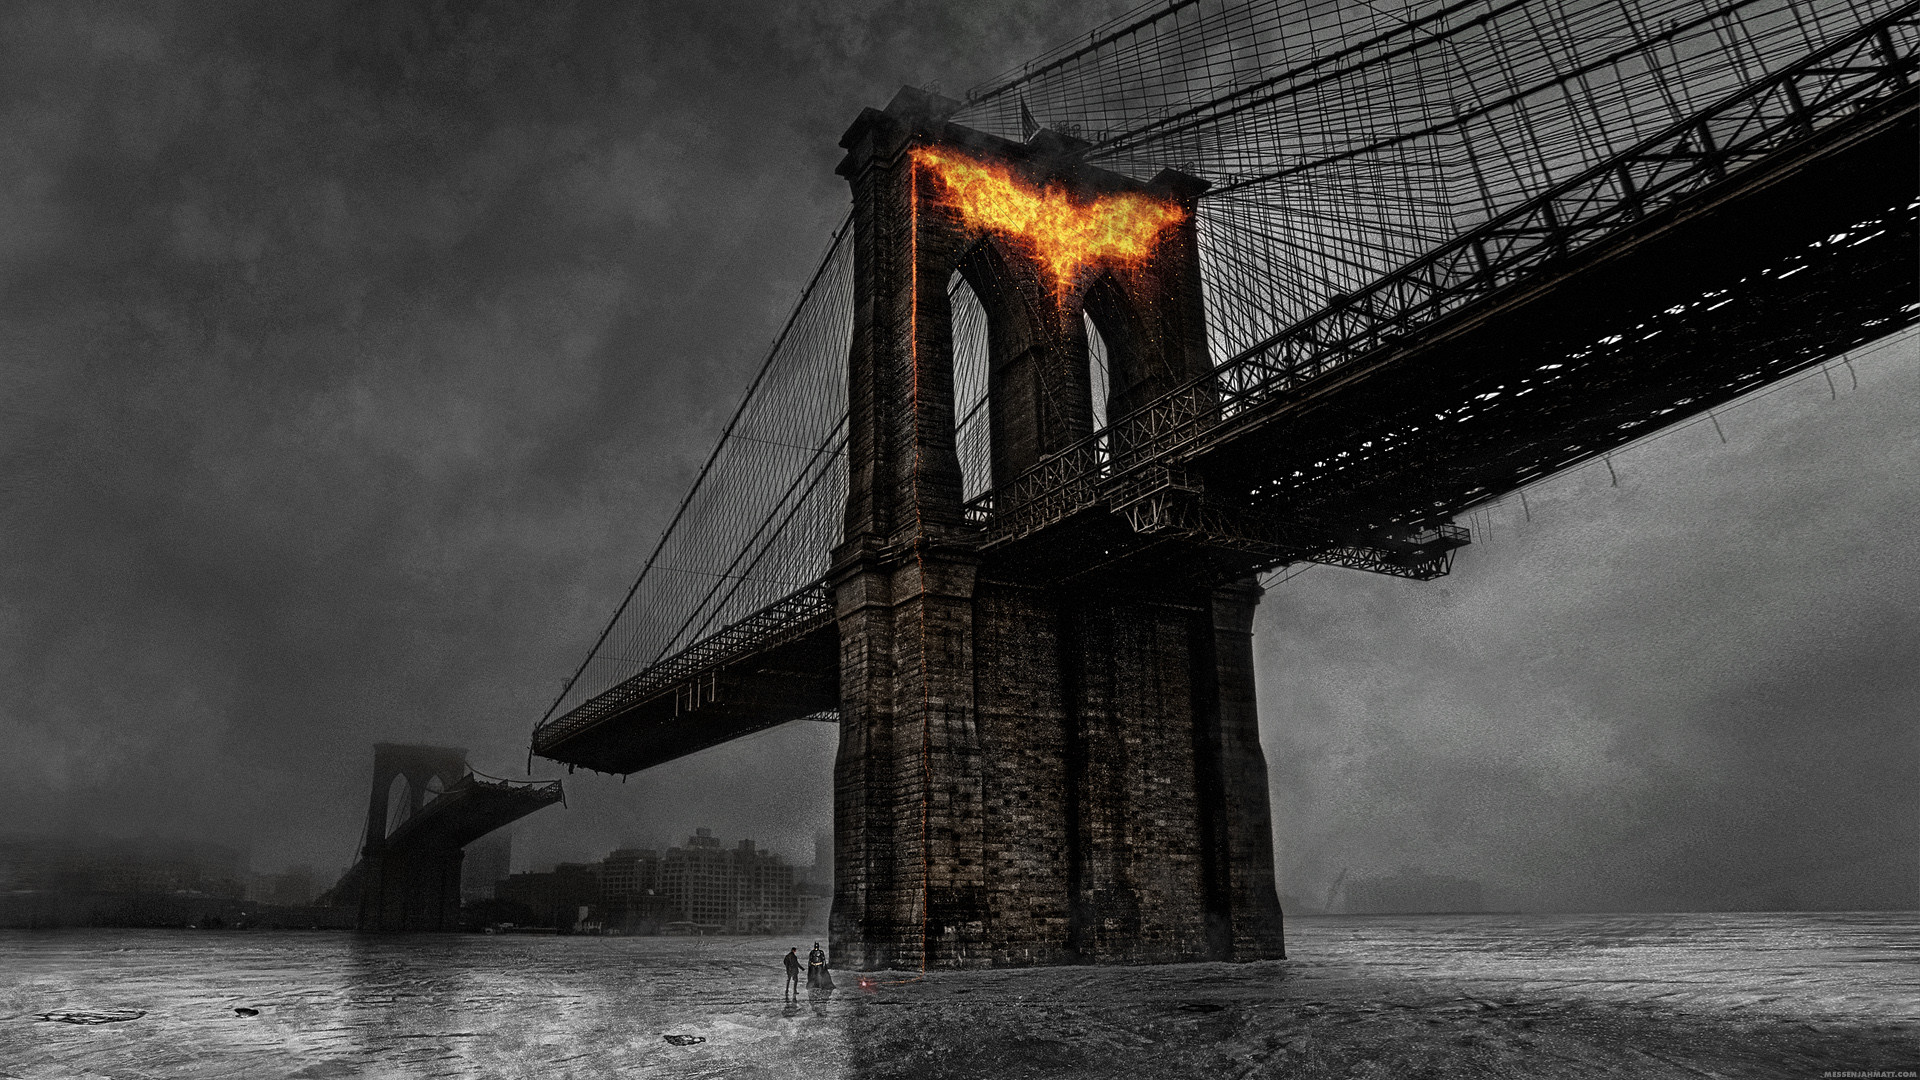 dark knight rises wallpaper free download